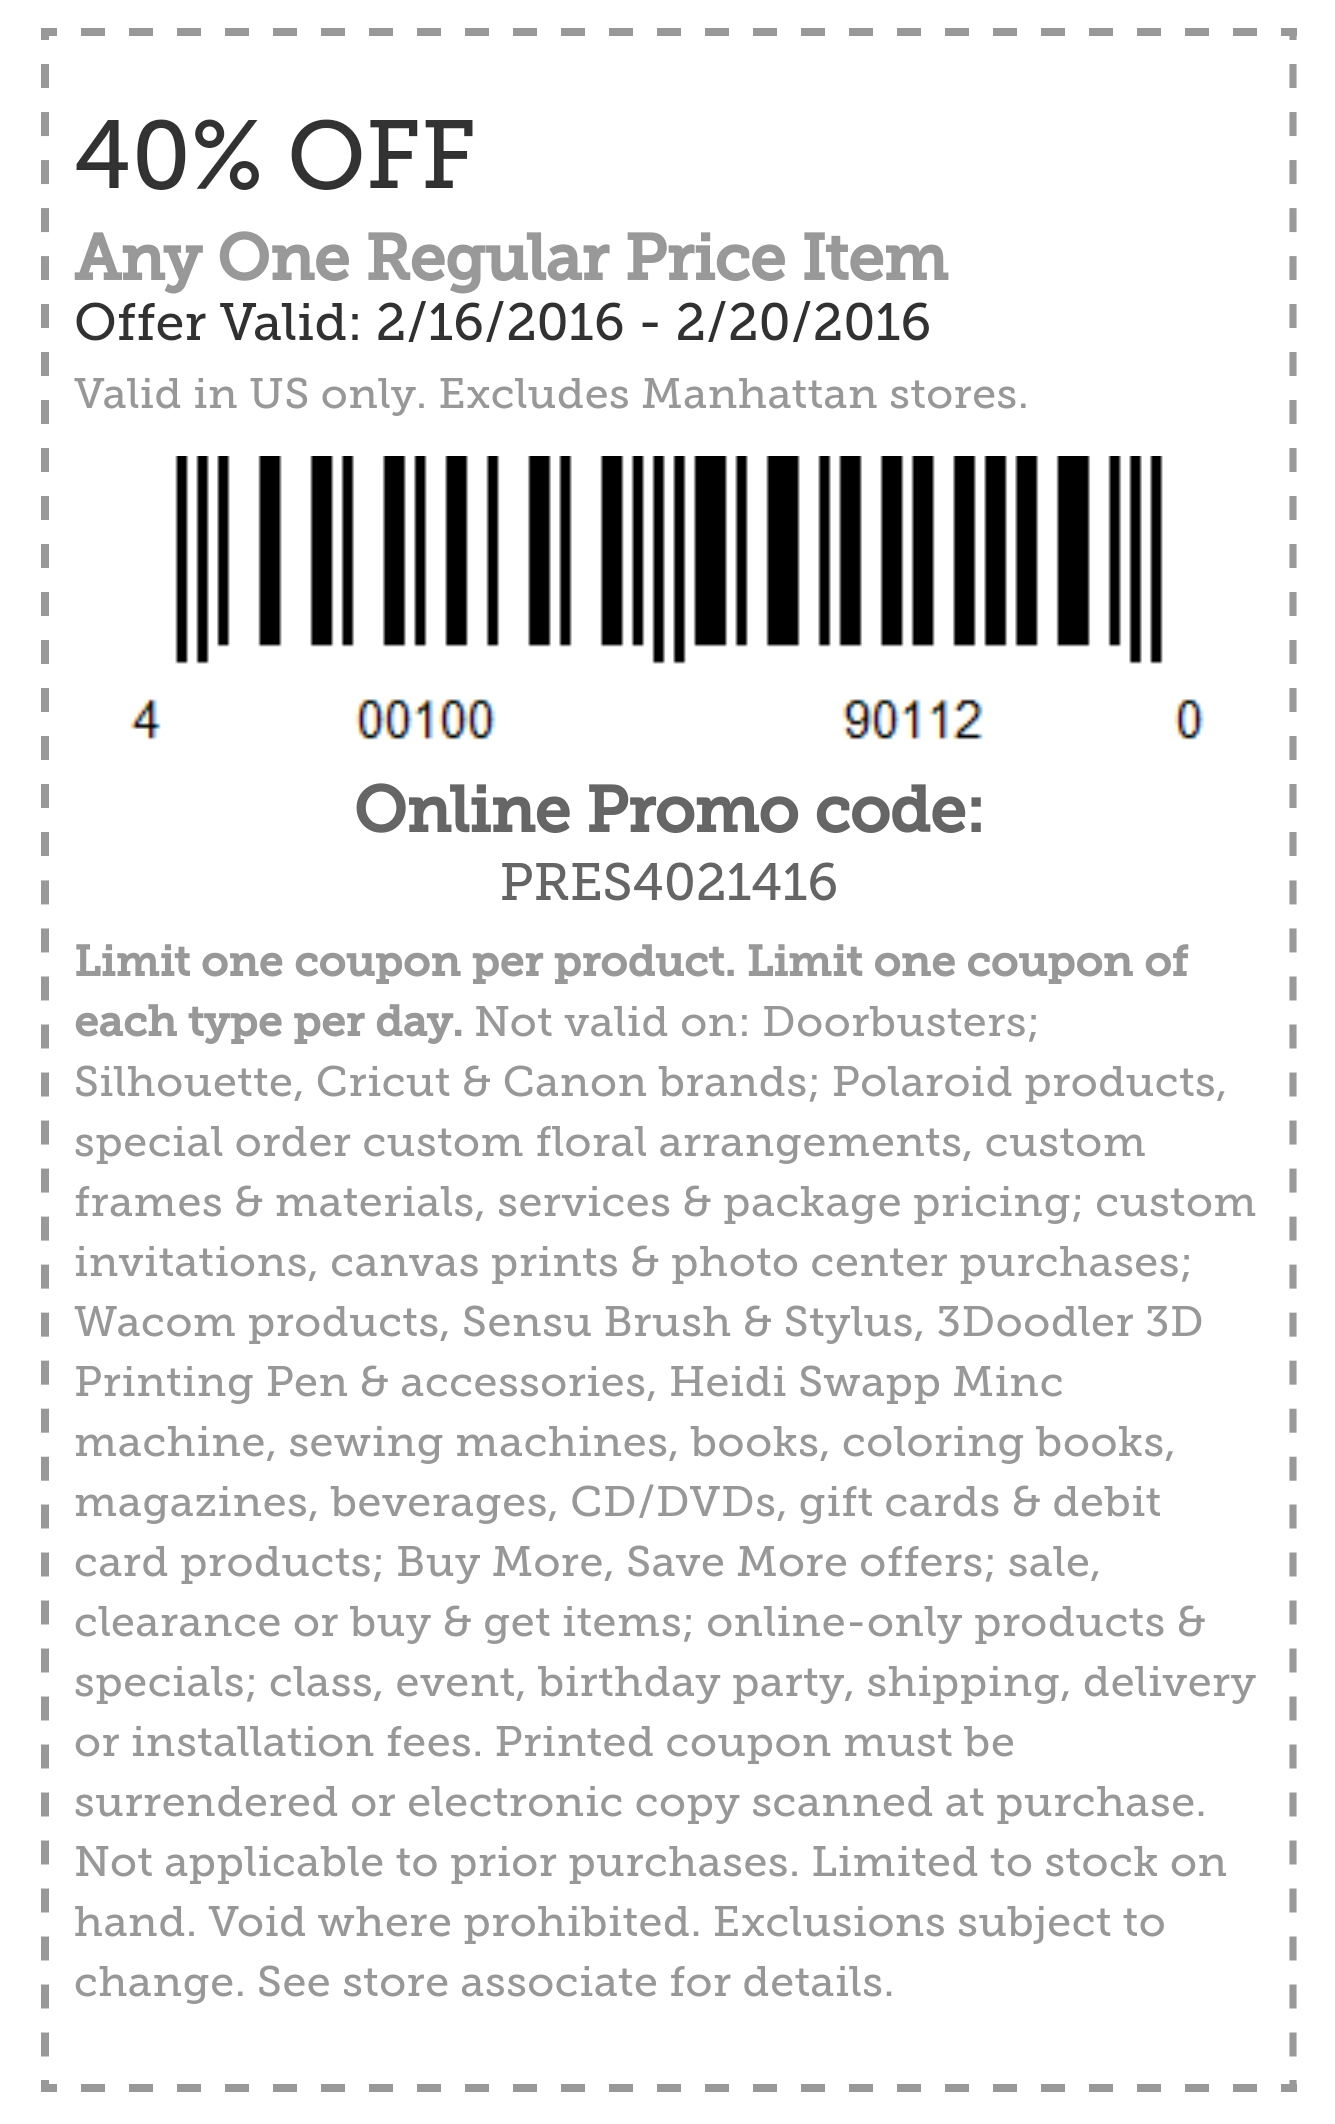 Michaels Coupon May 2018 40% off a single item at Michaels, or online via promo code PRES4021416